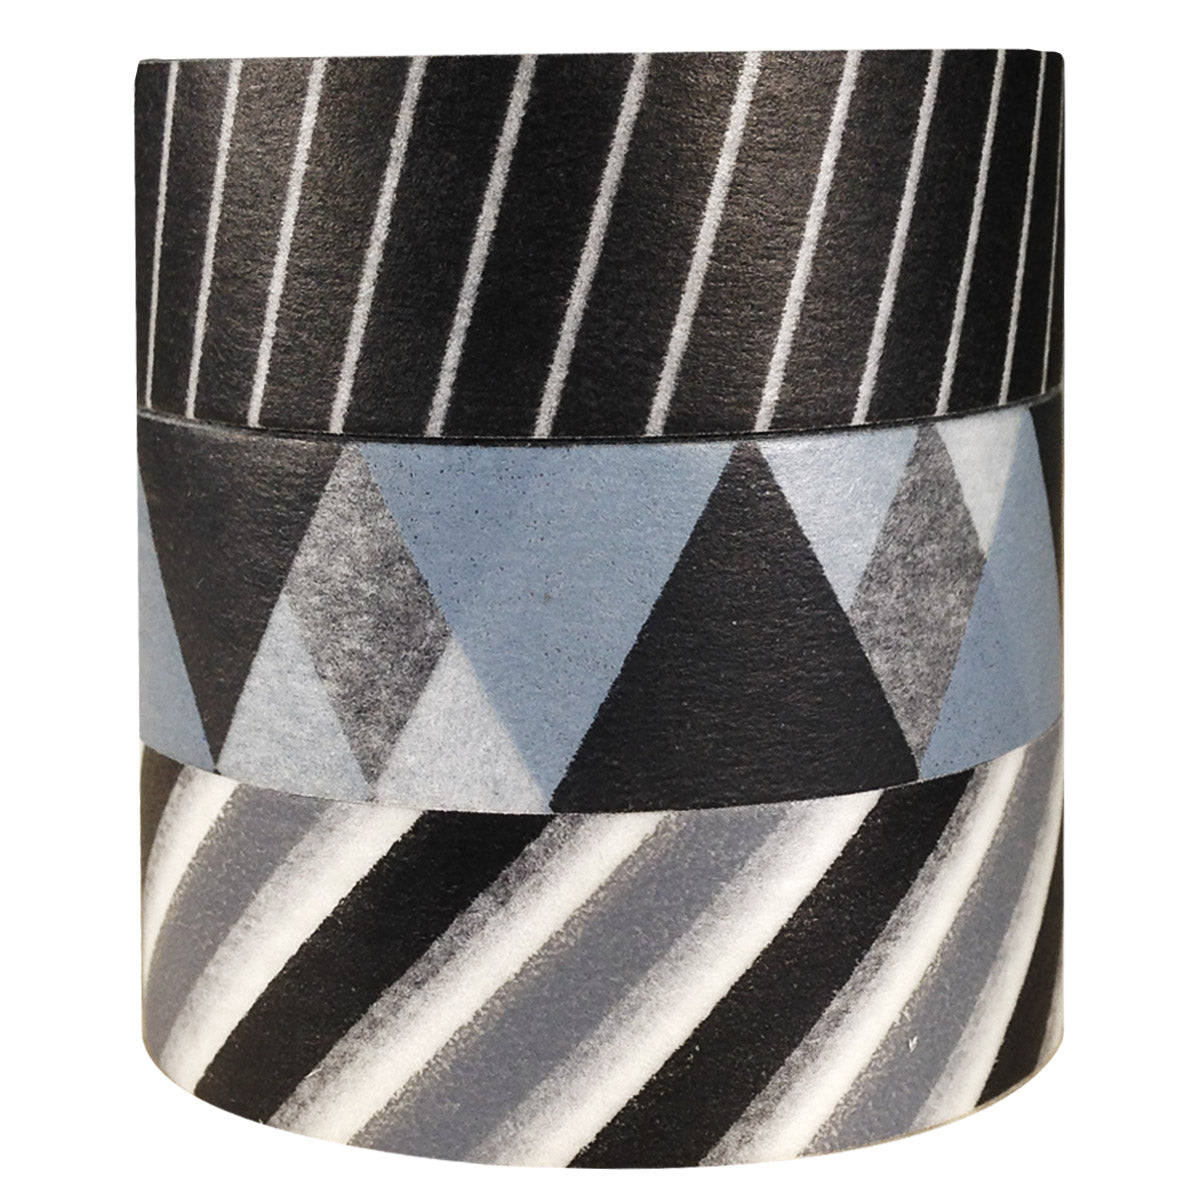 Wrapables Black Tie Japanese Washi Masking Tape (Set of 3)